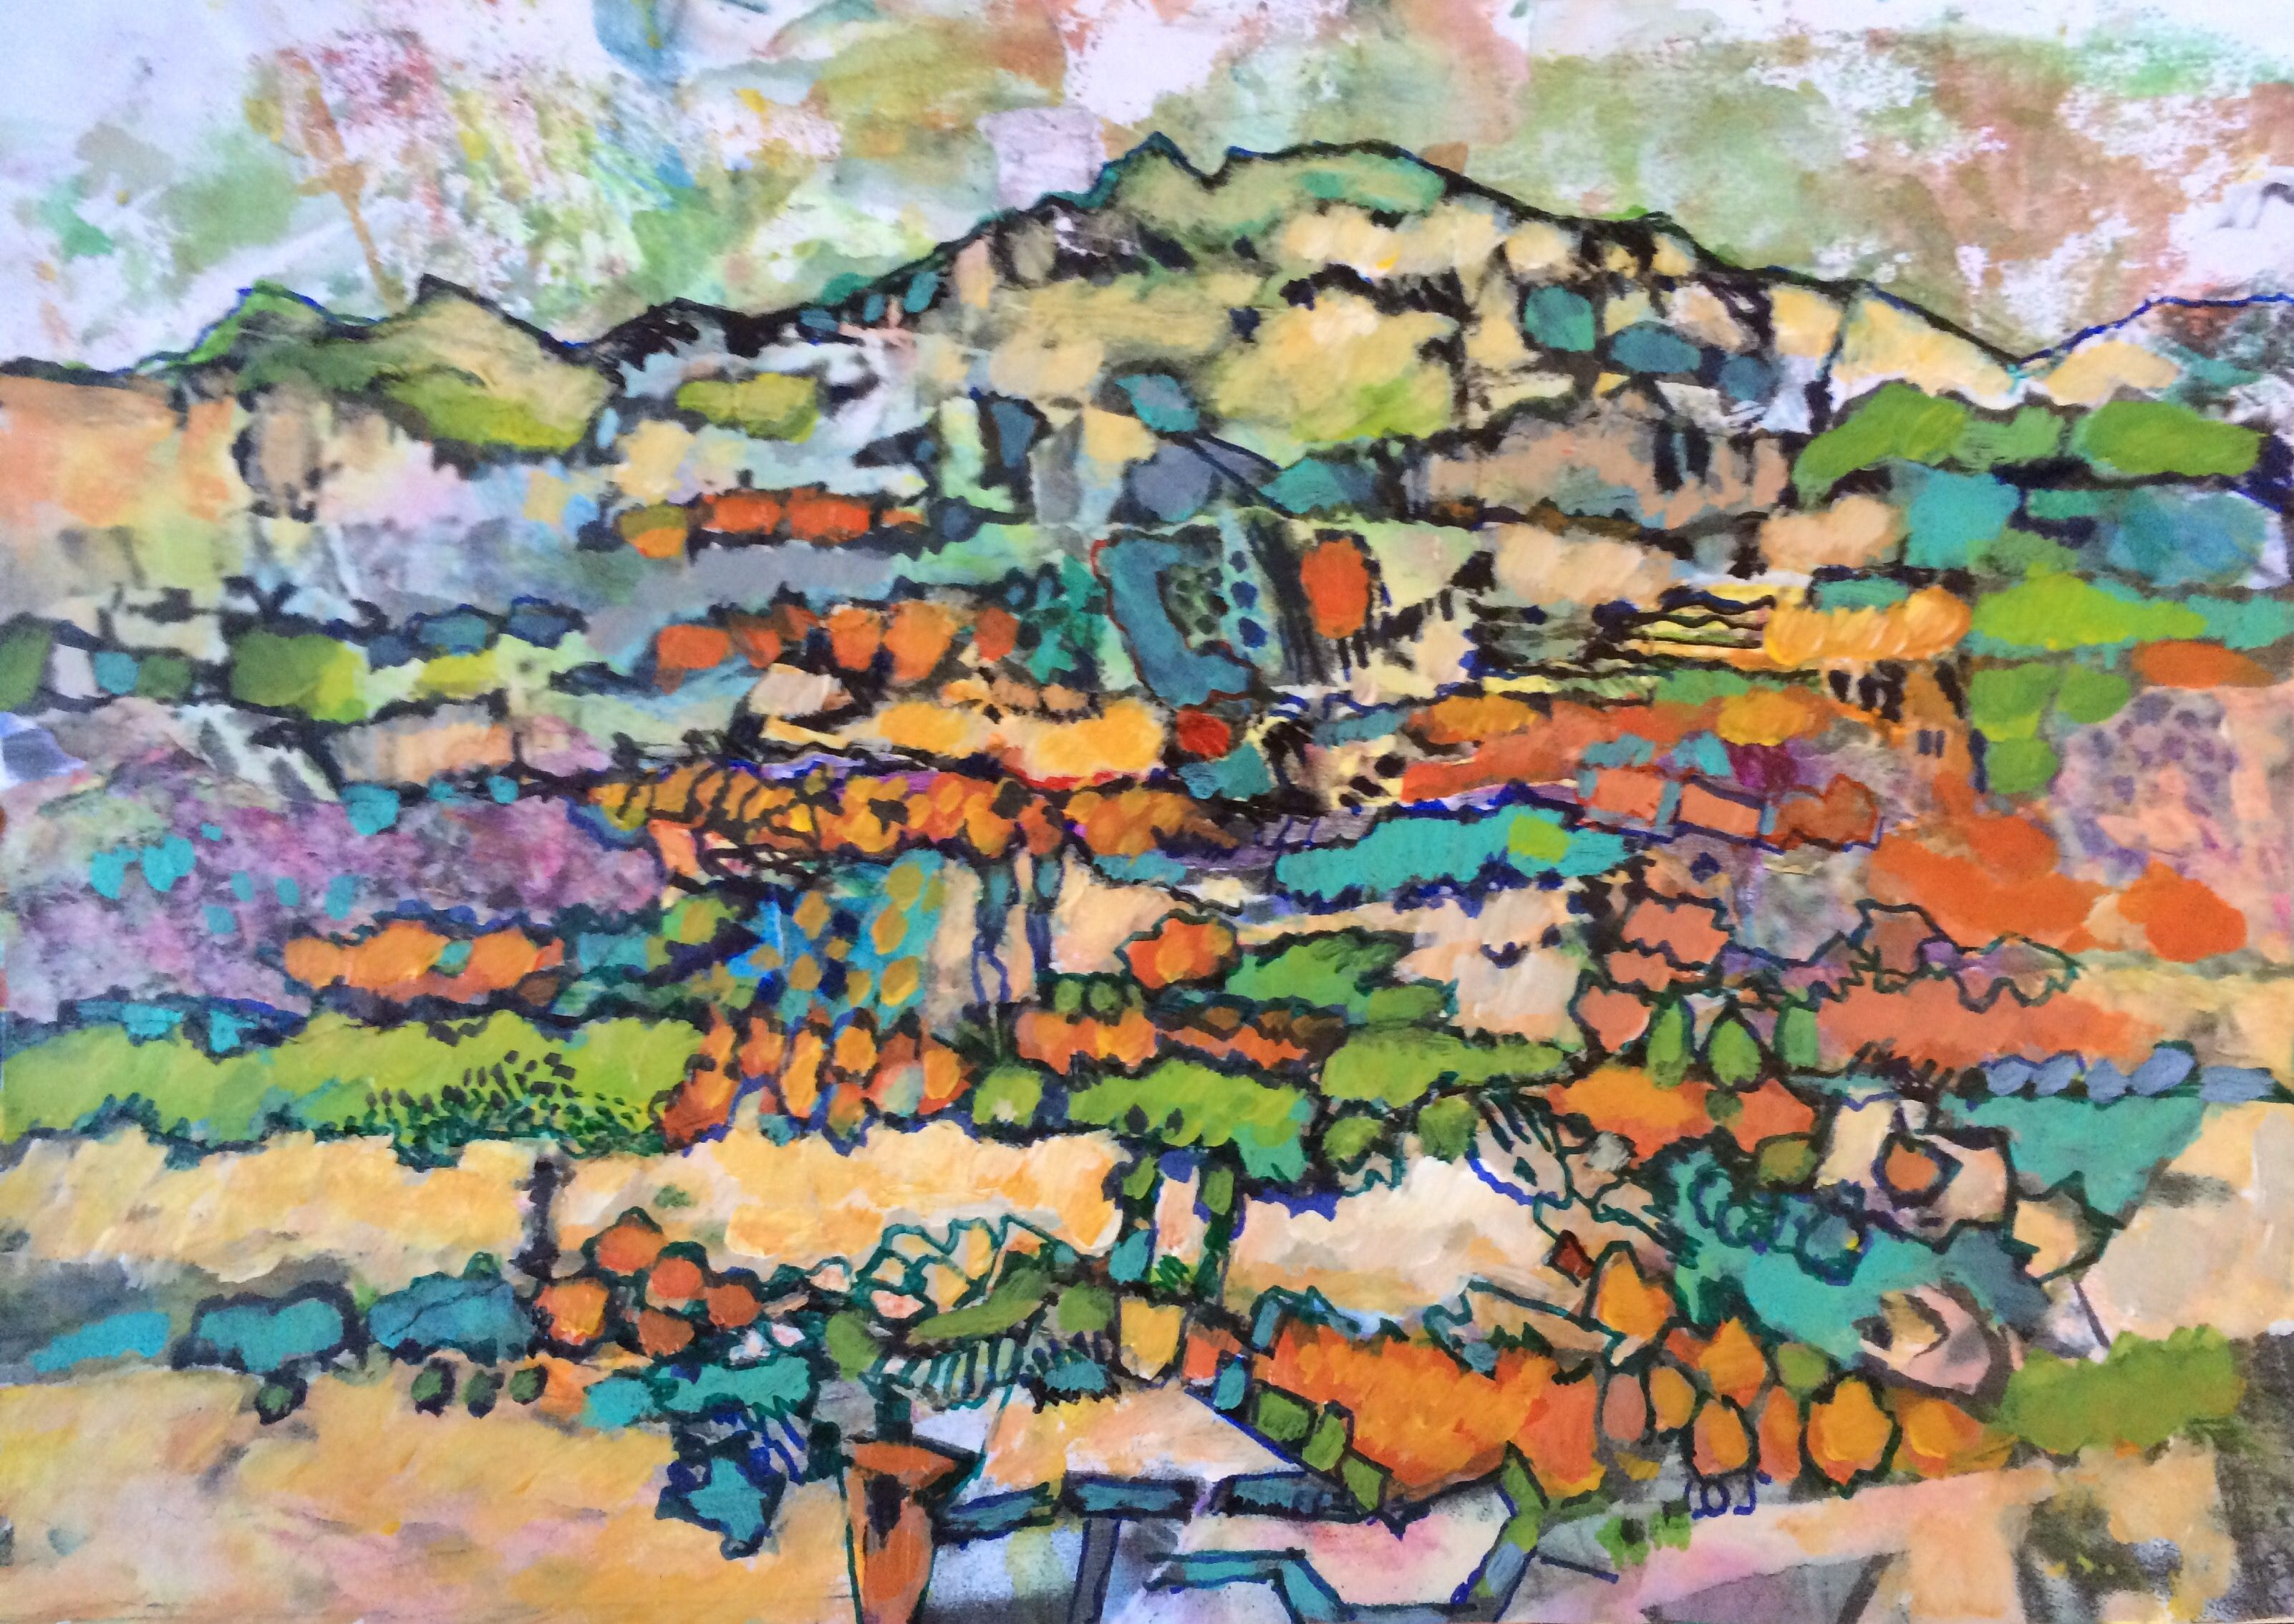 Chava Silverman Modern Contemporary Expressionist Landscape Painting - Dream and fantasy mountain landscape in brilliant color in acrylic and mixed media.